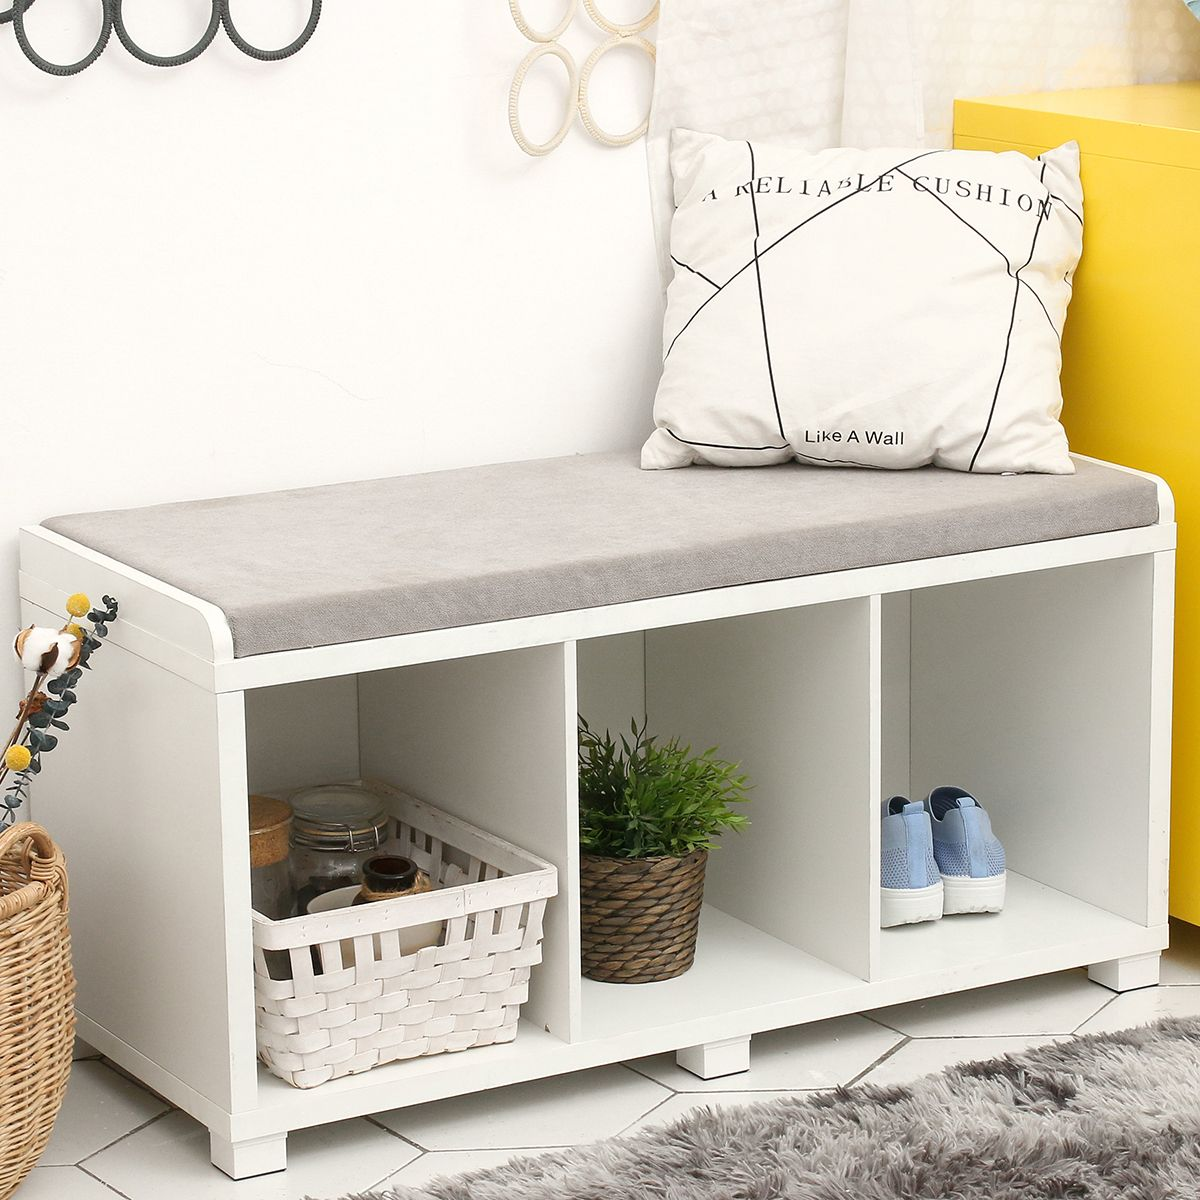 3 cubby cushion storage bench shoes cabinet organizer